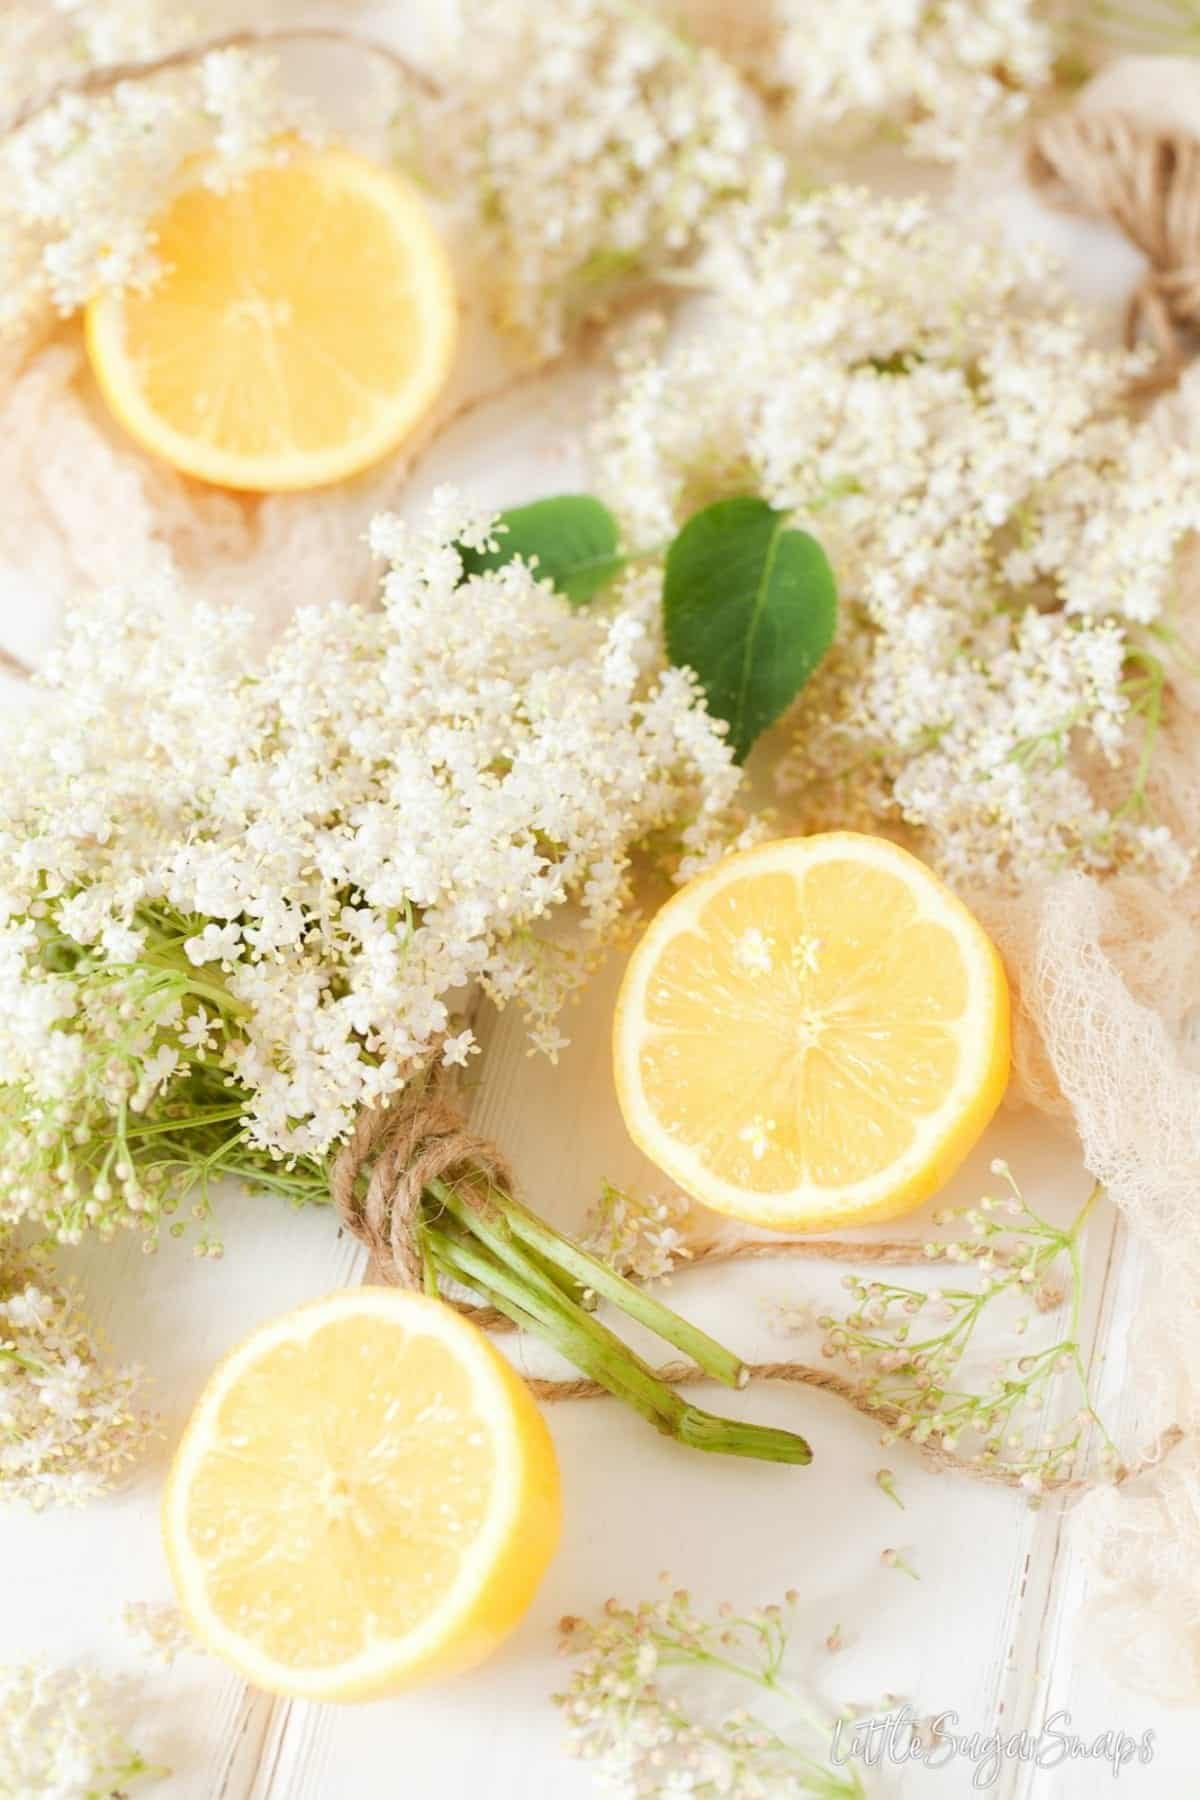 Lemon slices and elderflowers on a worktop